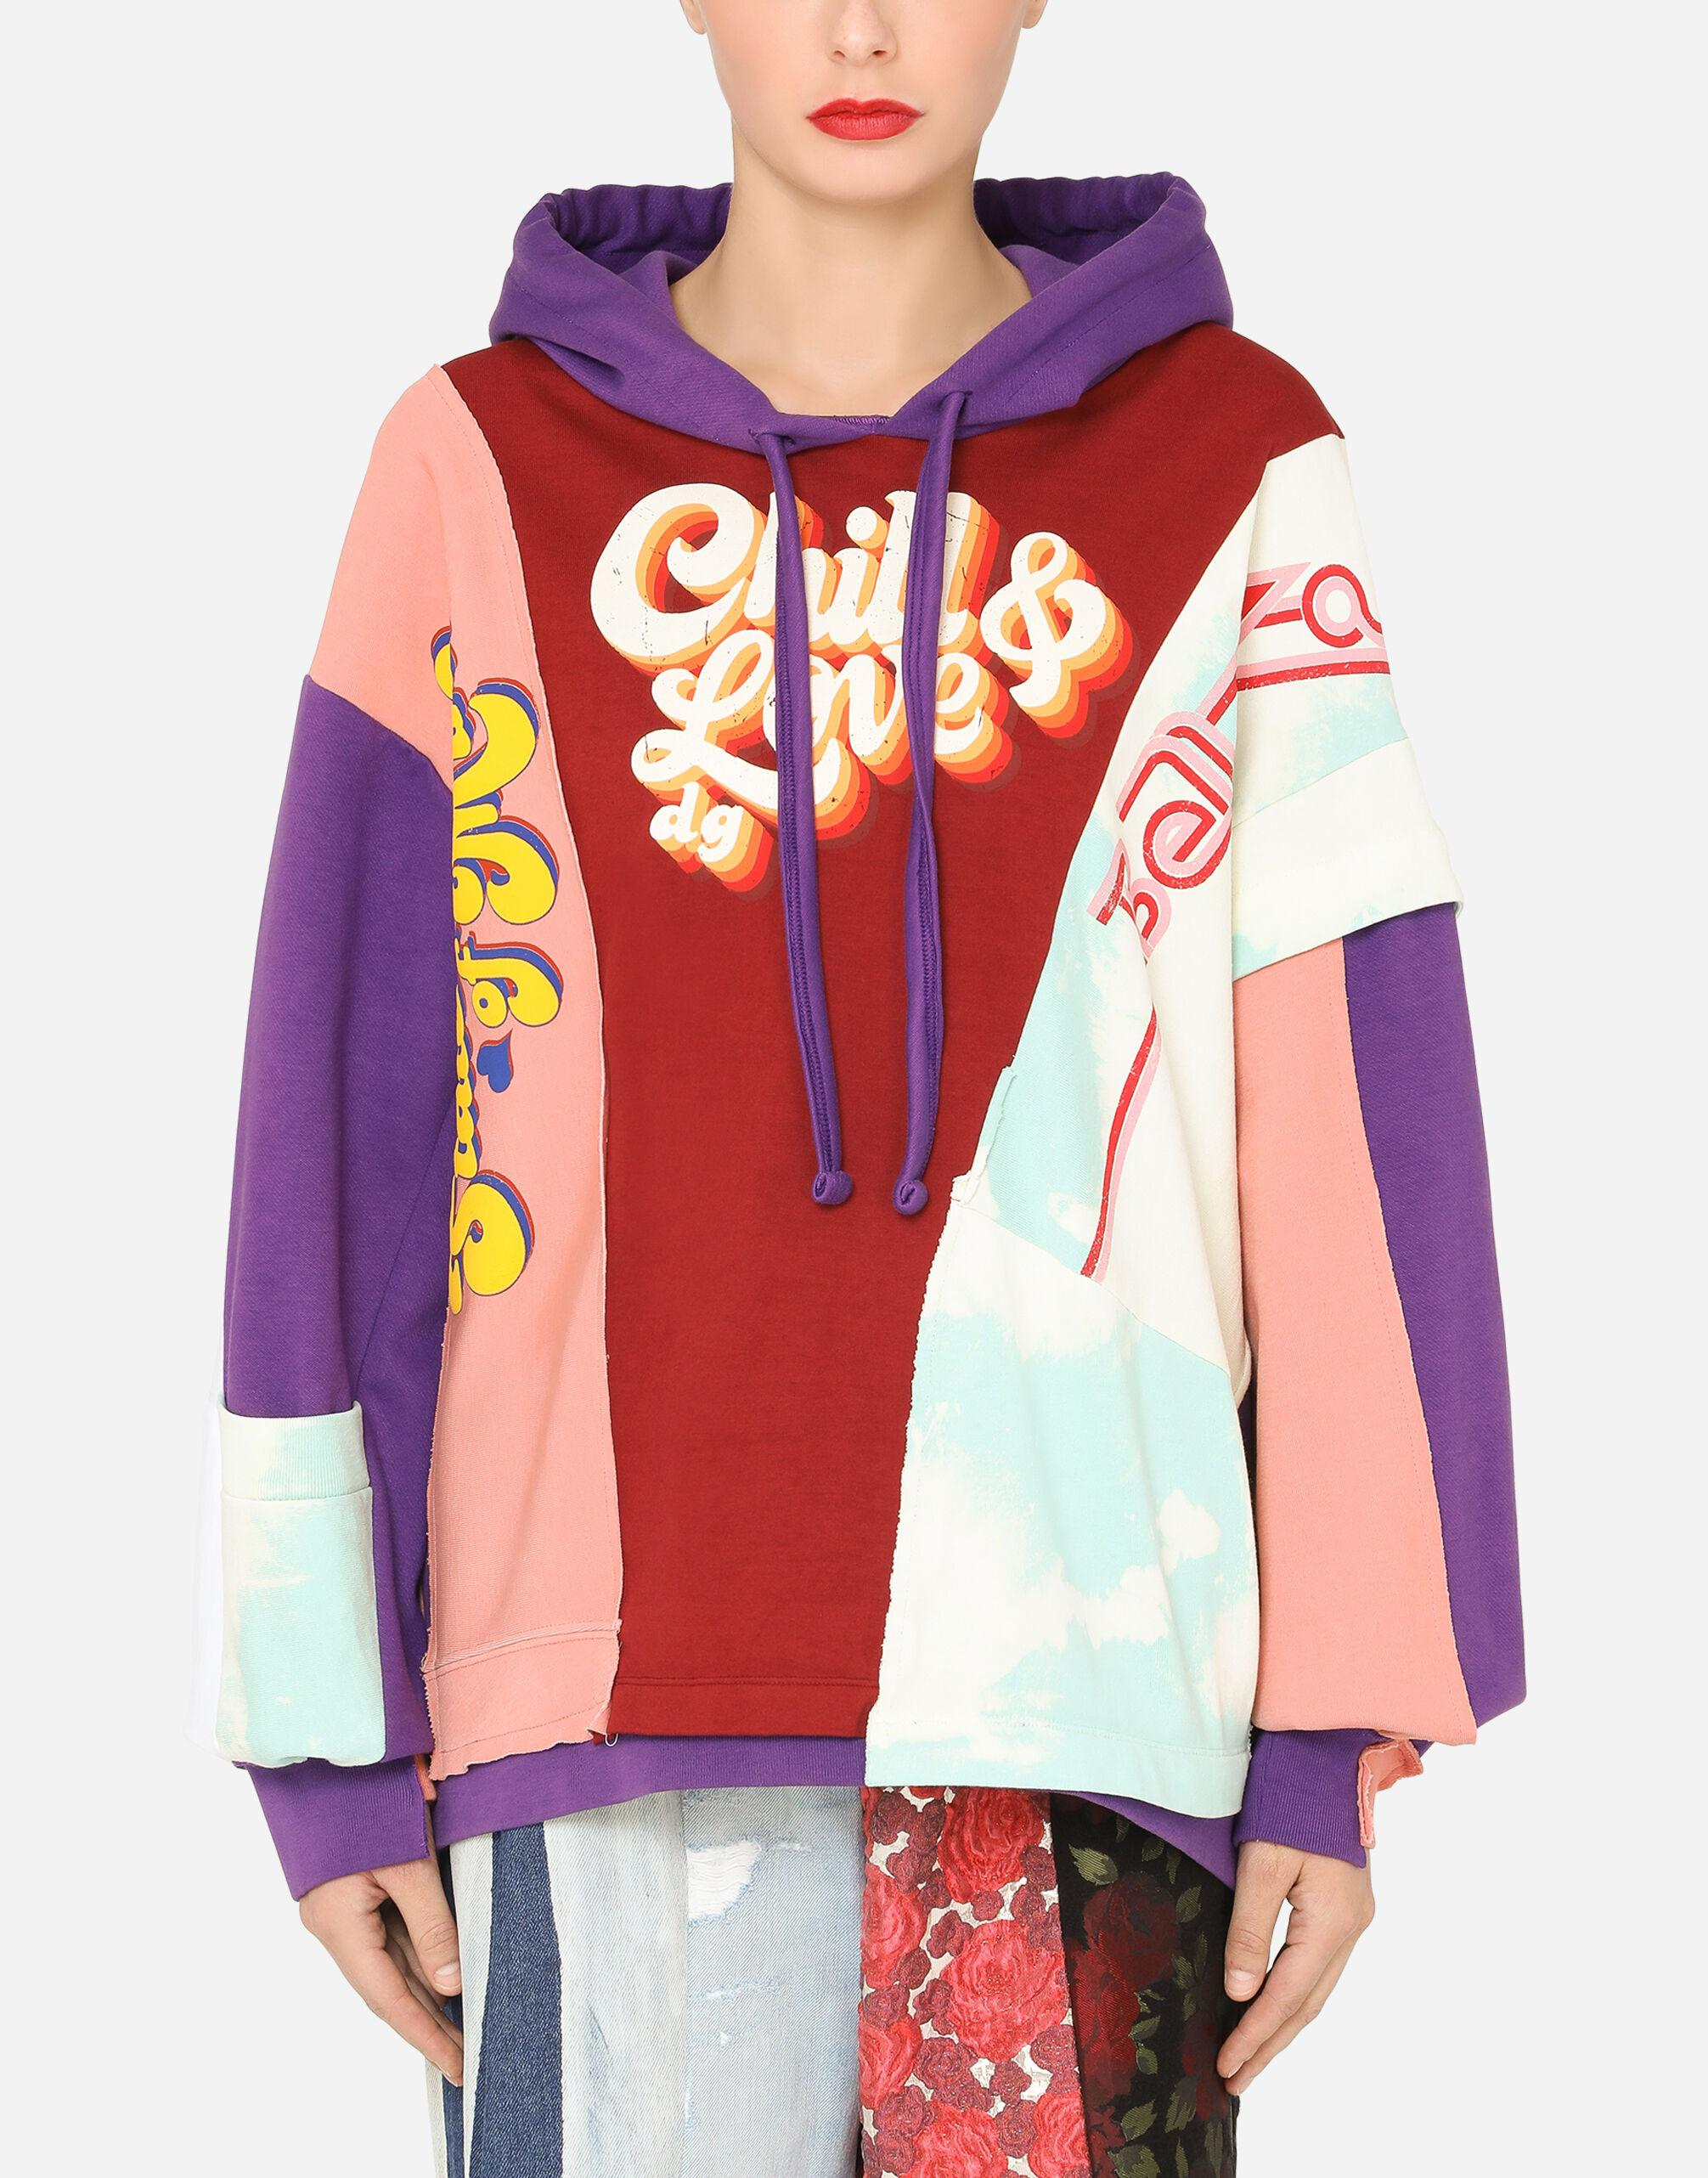 Patchwork jersey hoodie with chill & love DG print